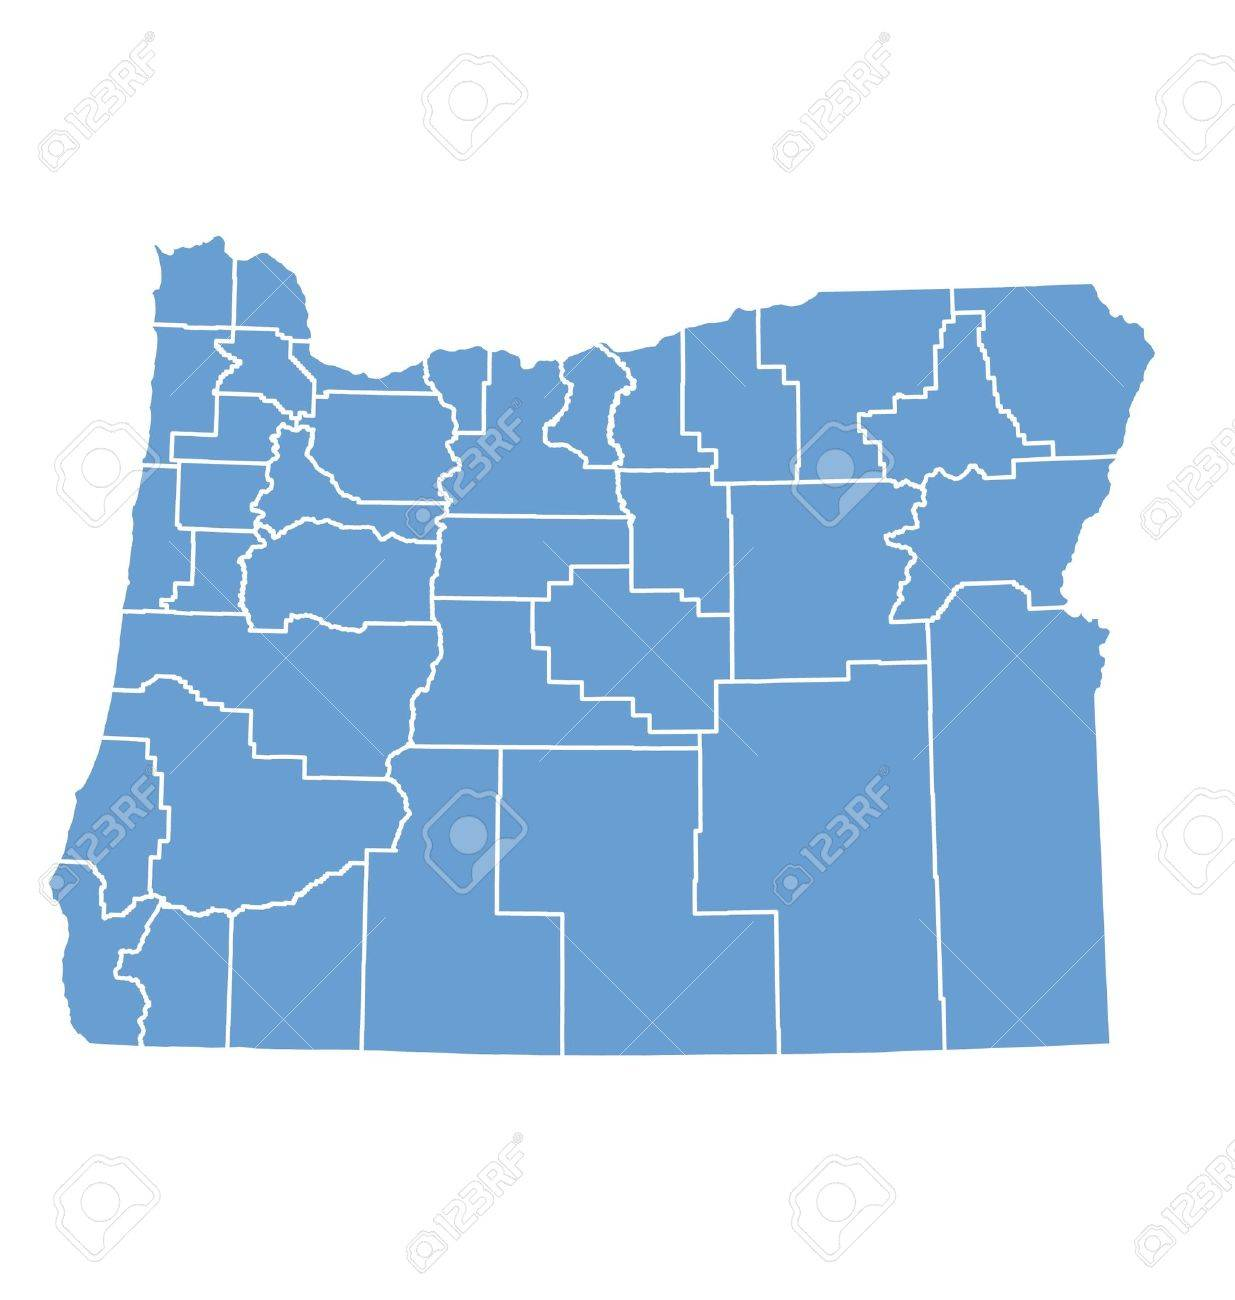 Oregon State Map With Counties.Oregon State Map By Counties Royalty Free Cliparts Vectors And